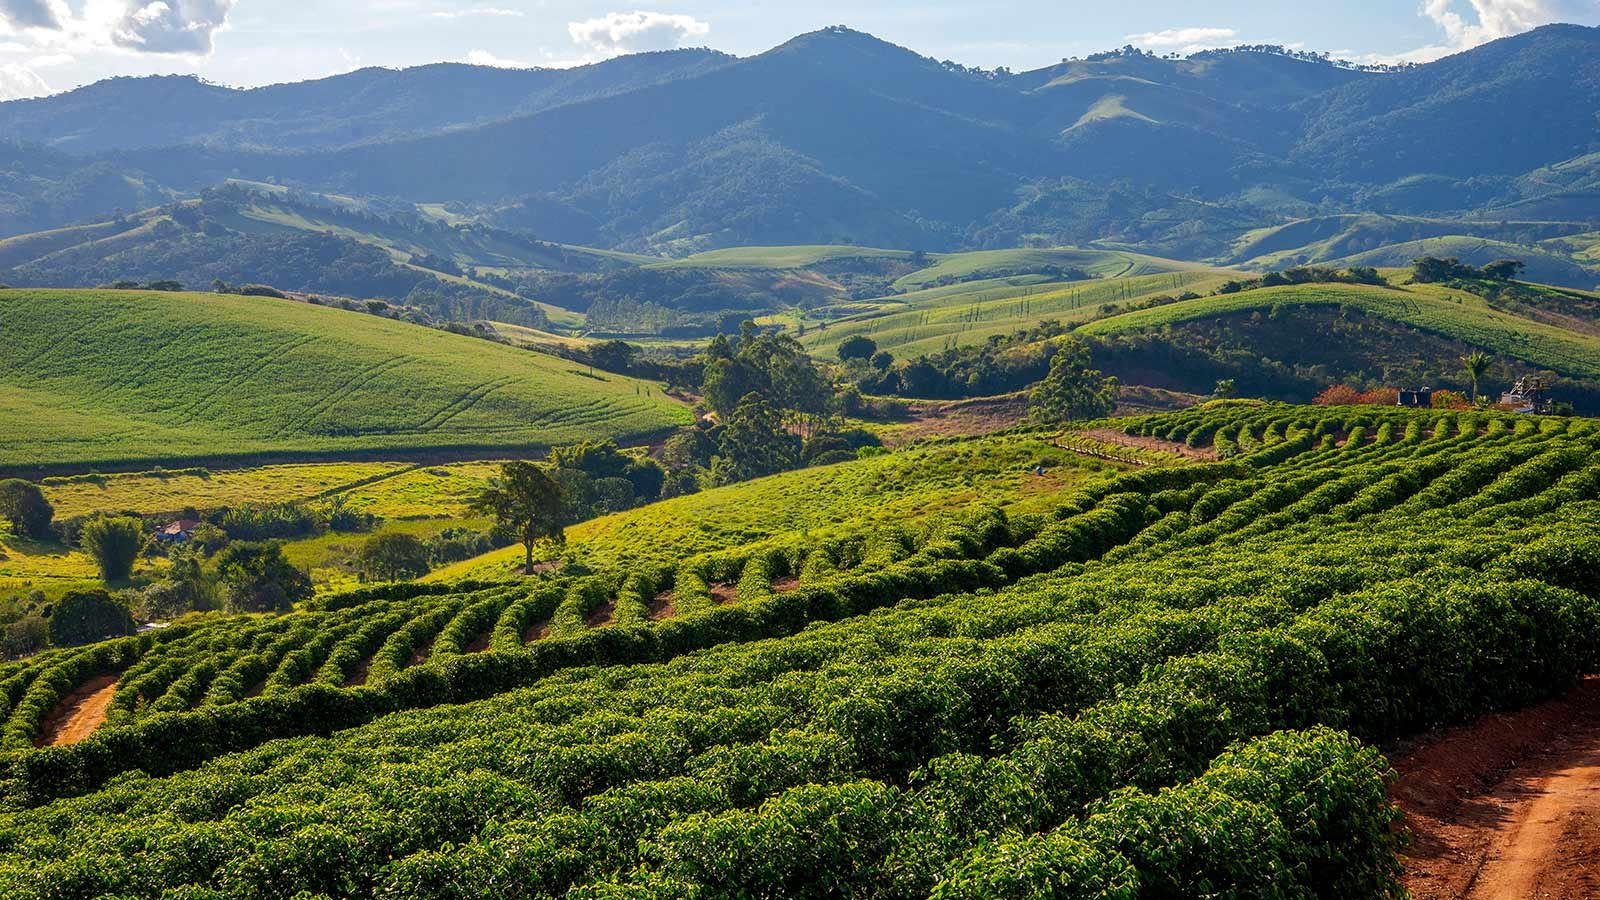 A Brazilian coffee plantation with rows of plants framed against distant mountains.